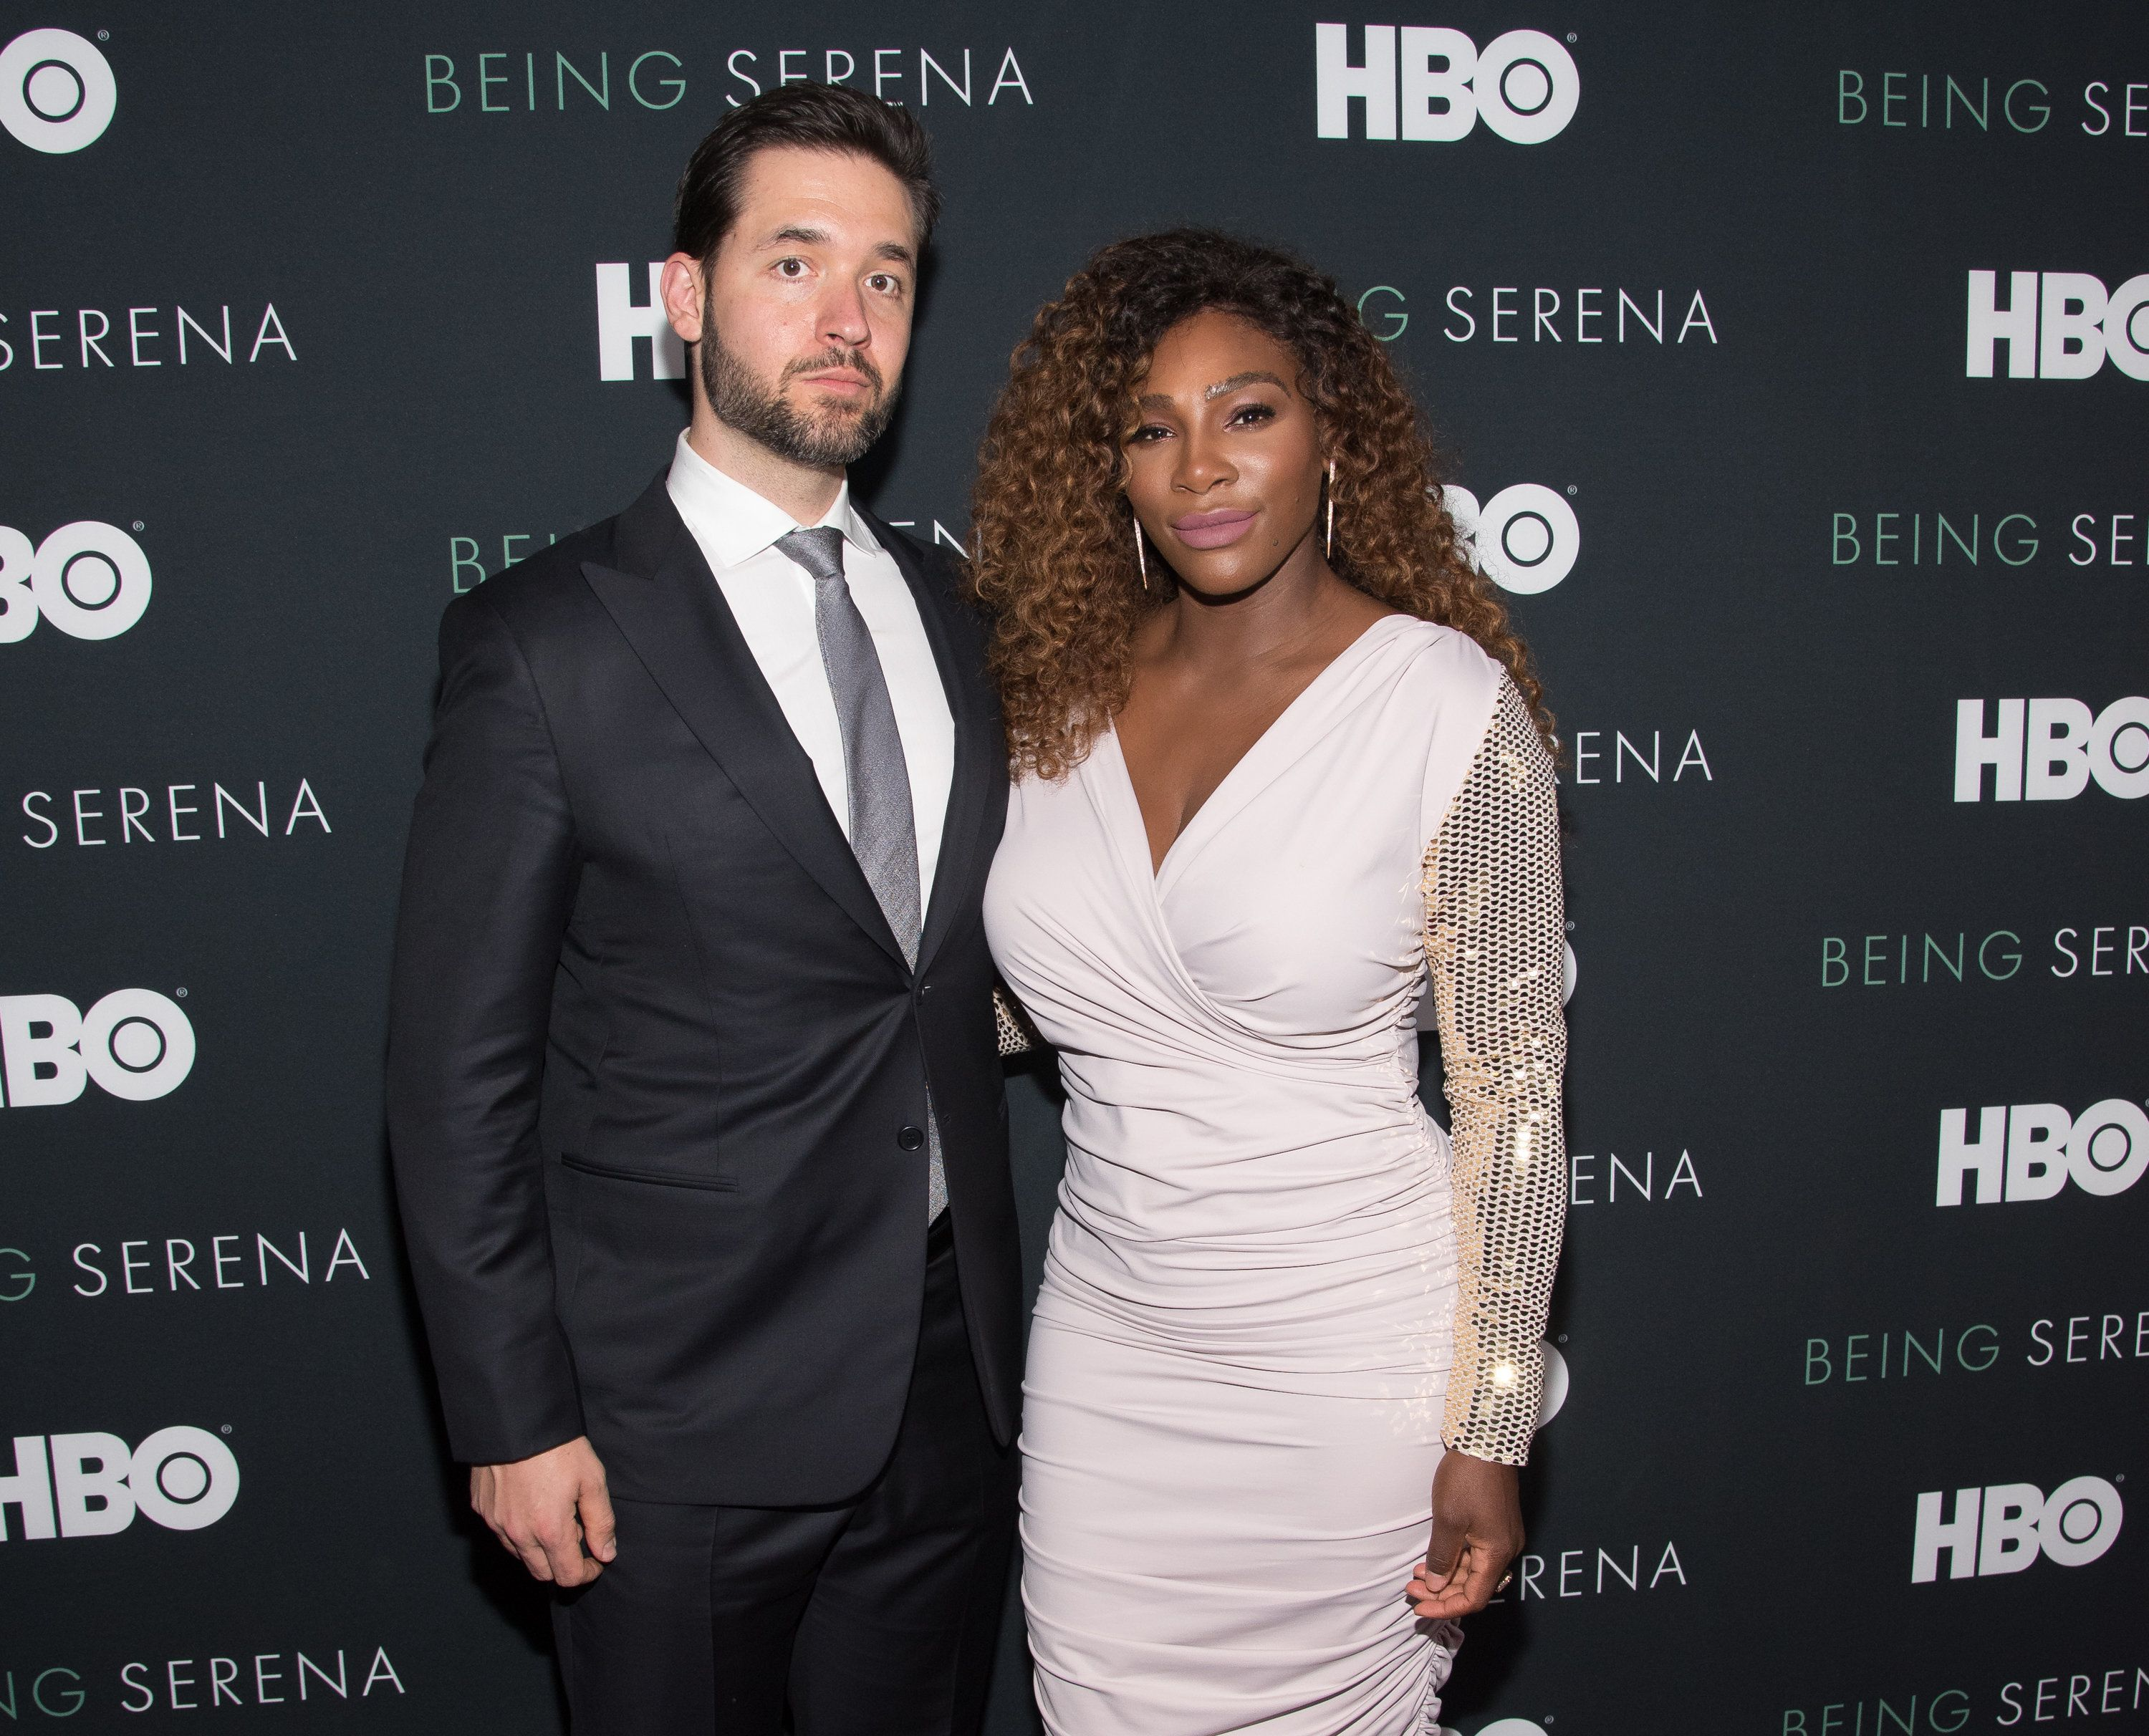 NEW YORK, NY - APRIL 25:  Serena Williams (R) and husband Alexis Ohanian attend the 'Being Serena' New York Premiere at Time Warner Center on April 25, 2018 in New York City.  (Photo by Mike Pont/WireImage)